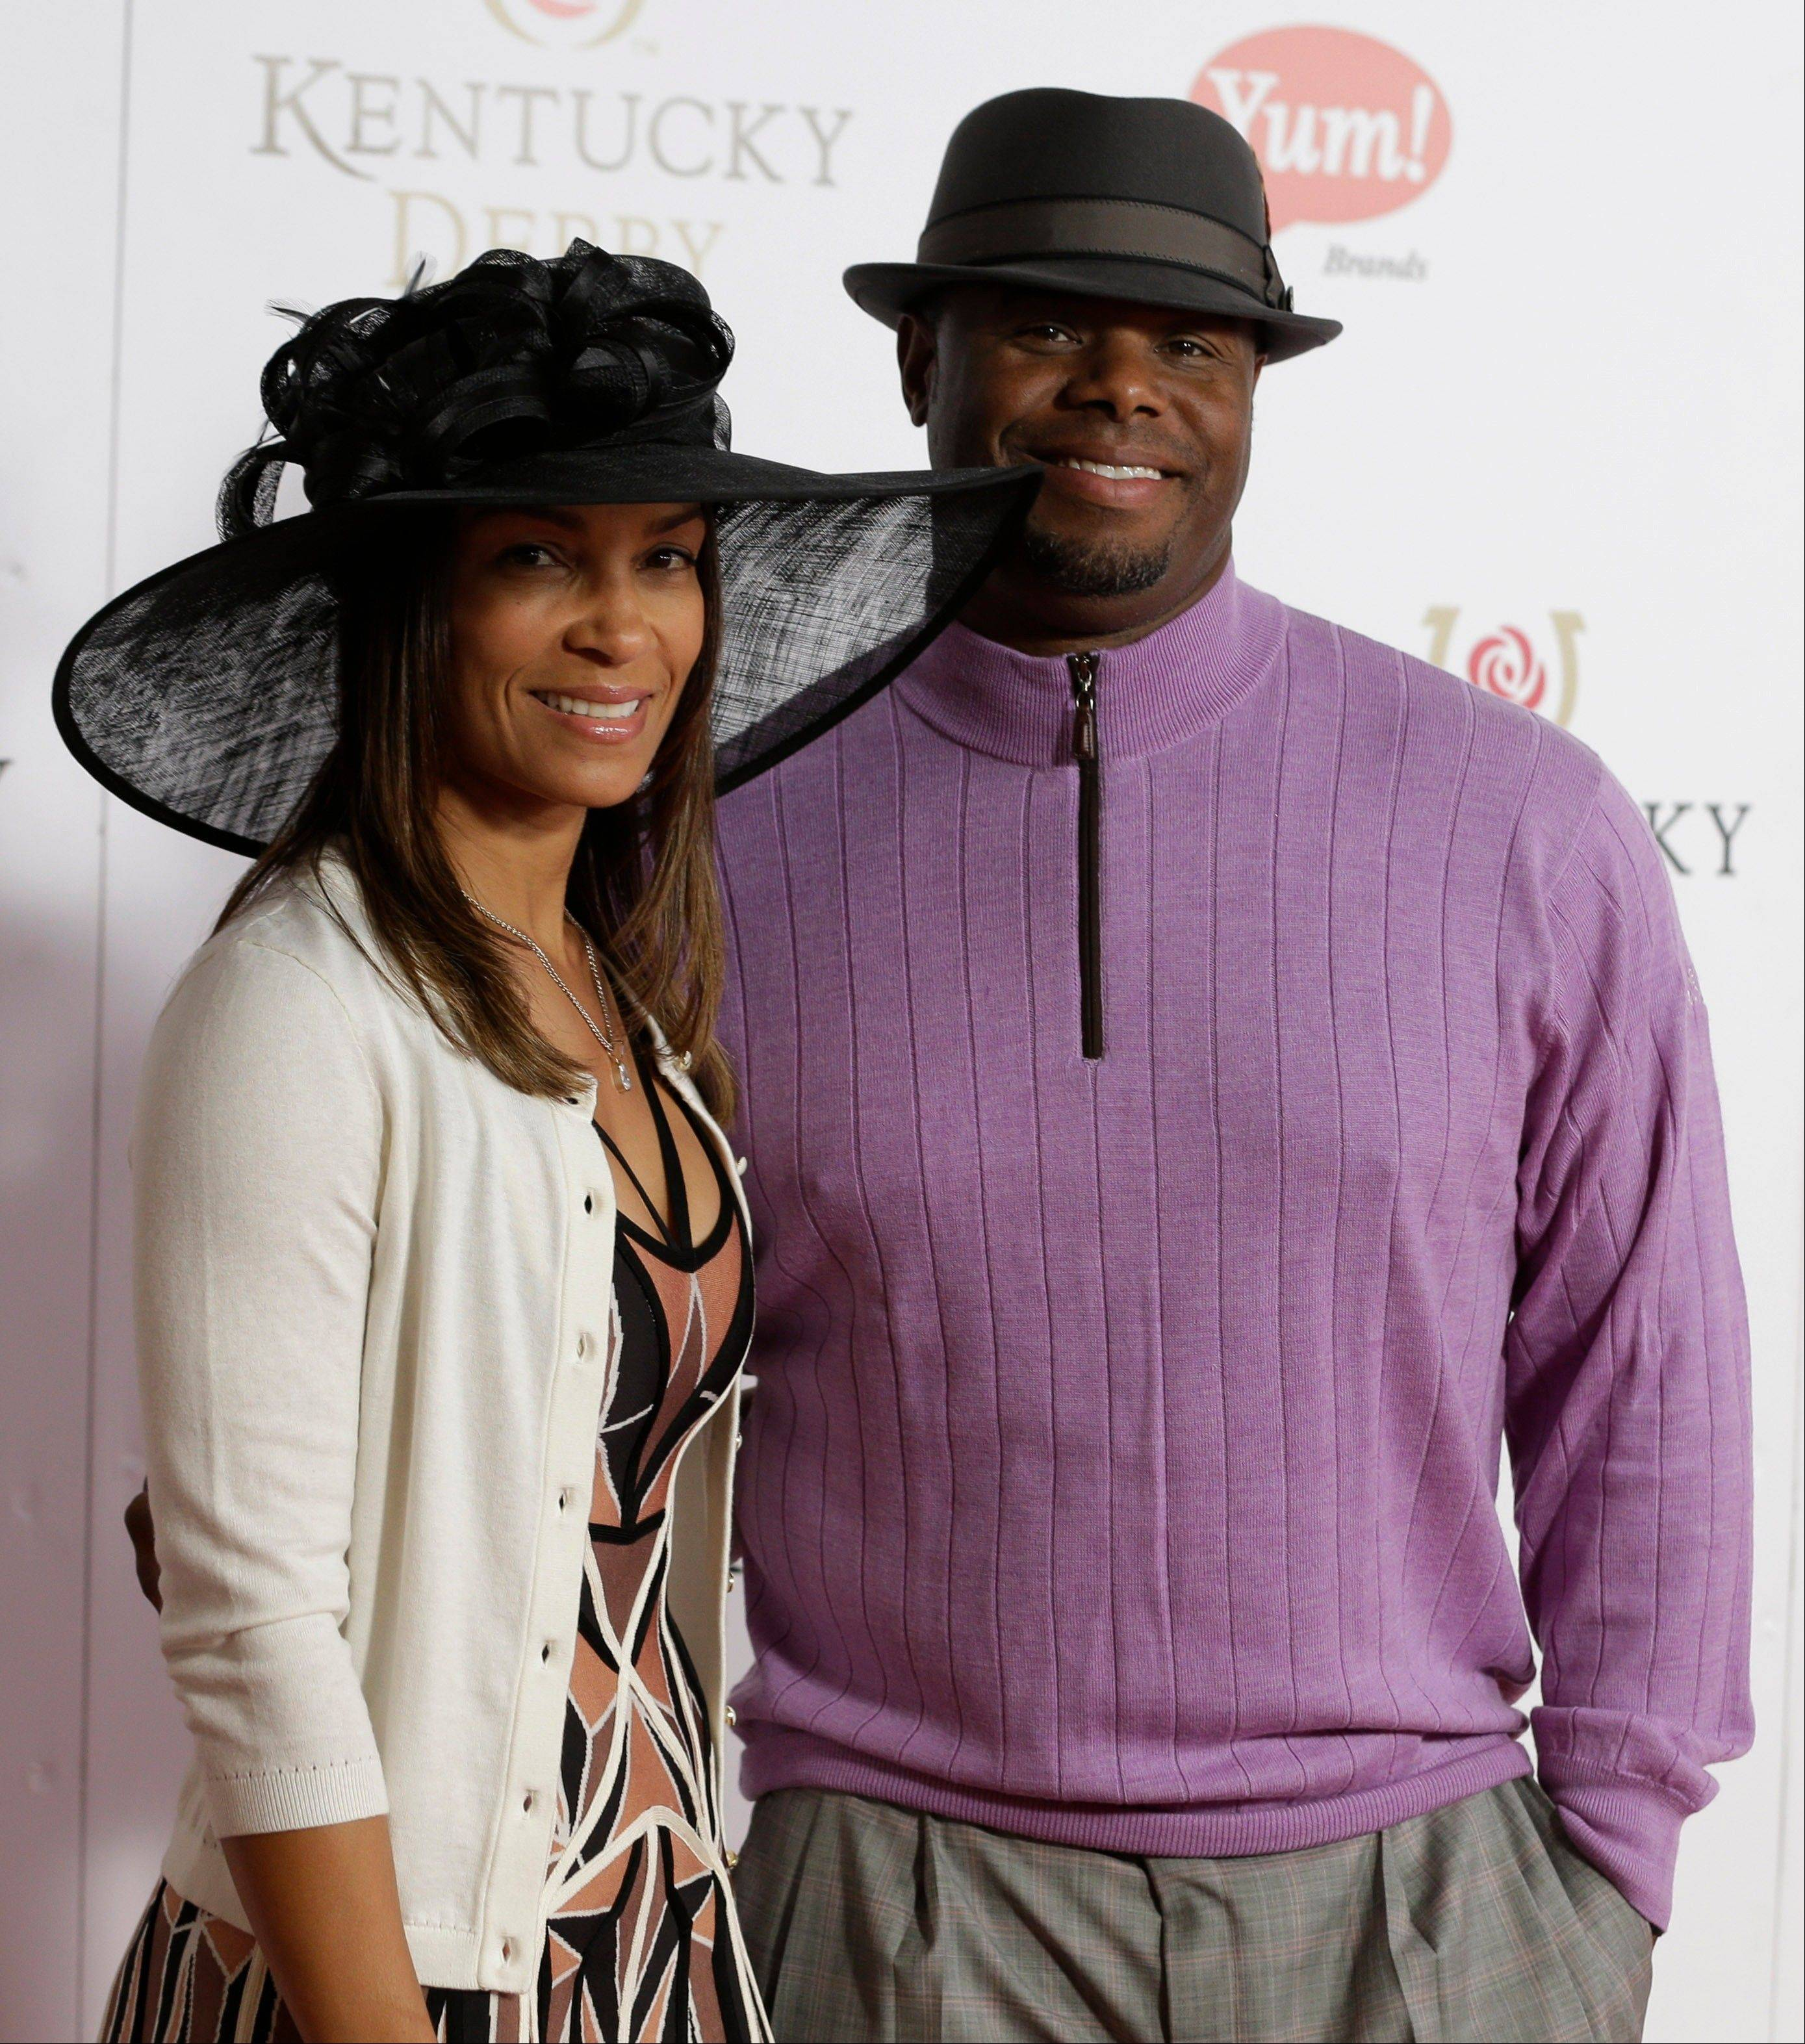 Former professional baseball player Ken Griffey Jr. arrives with his wife Melissa.